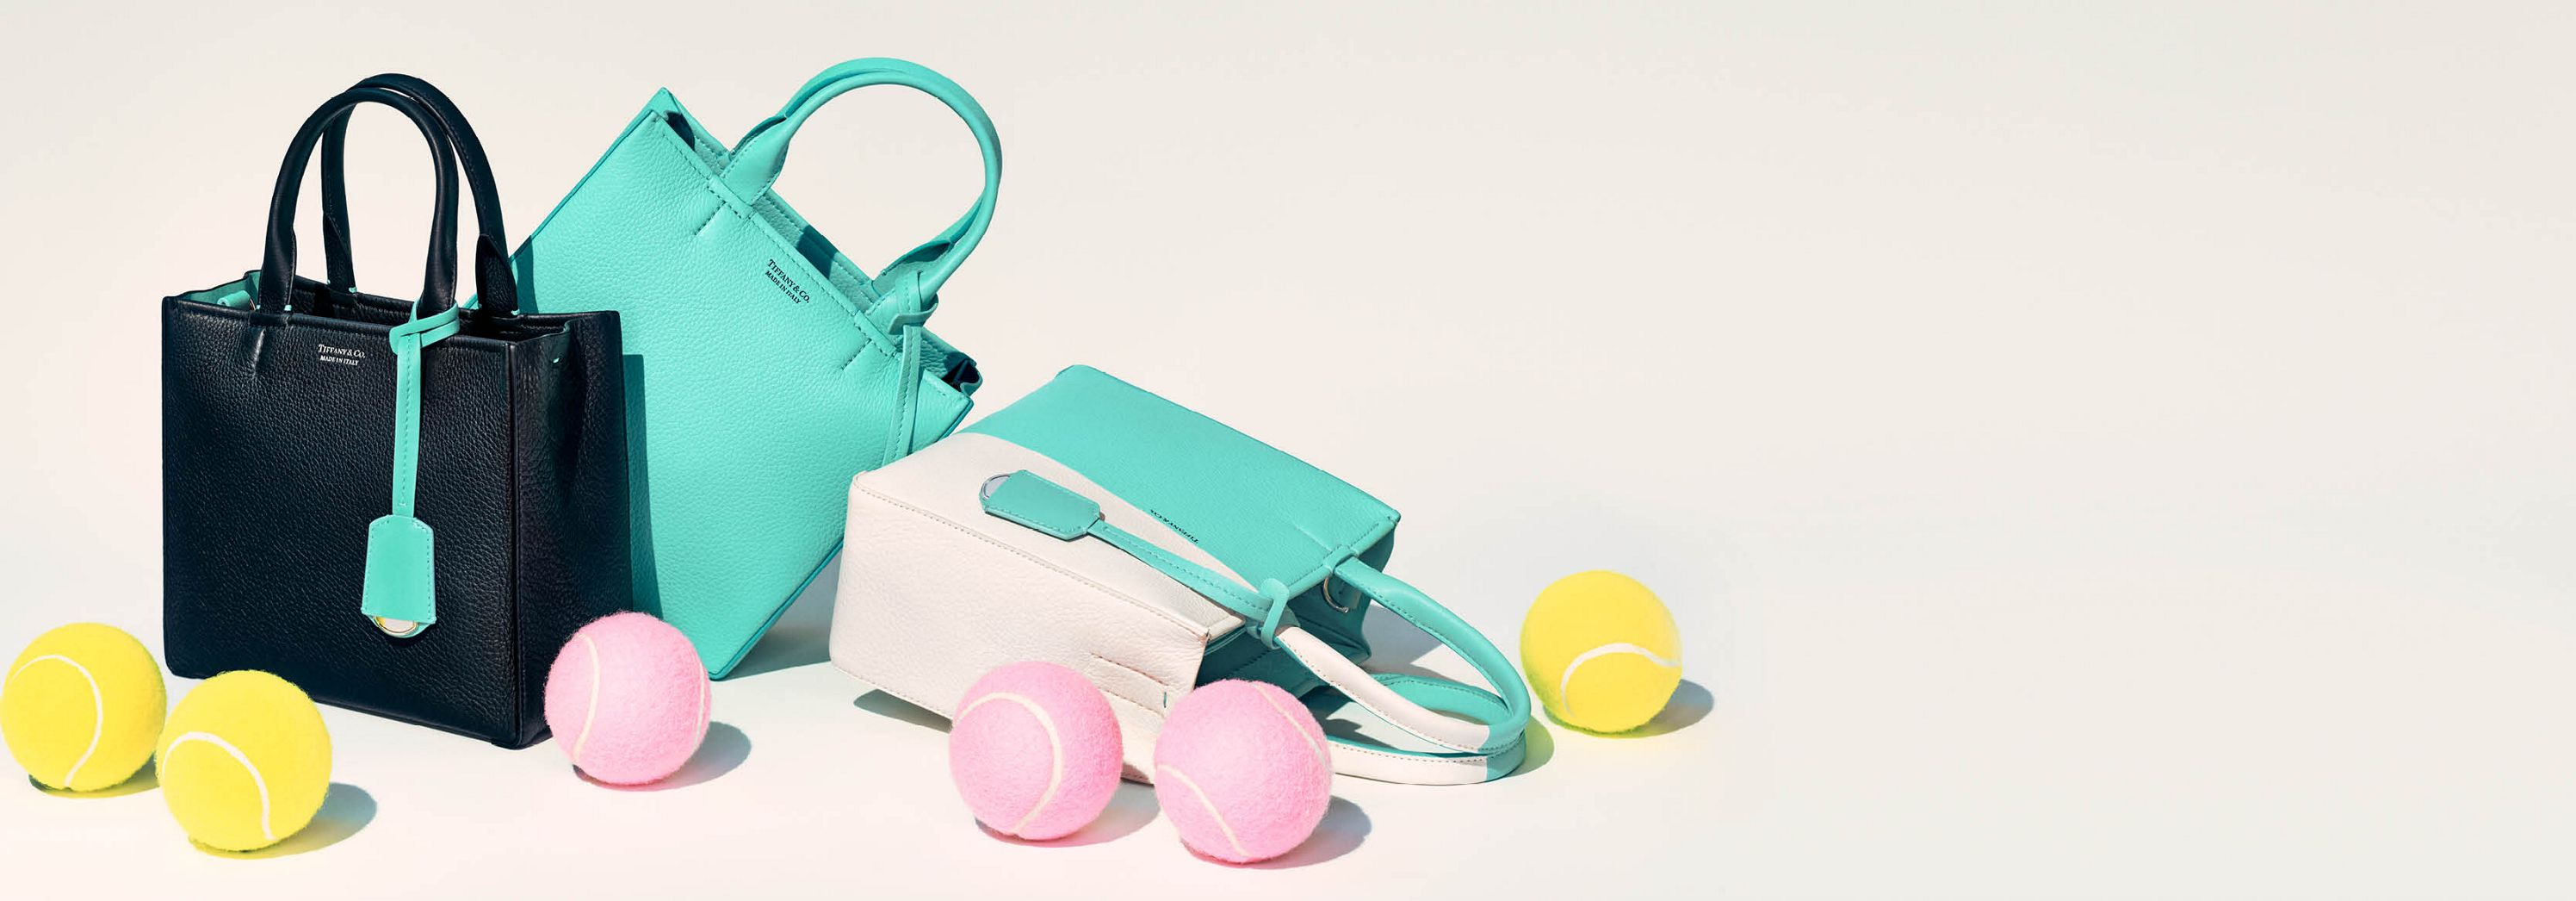 Shop New Tiffany & Co. Home & Accessories Designs